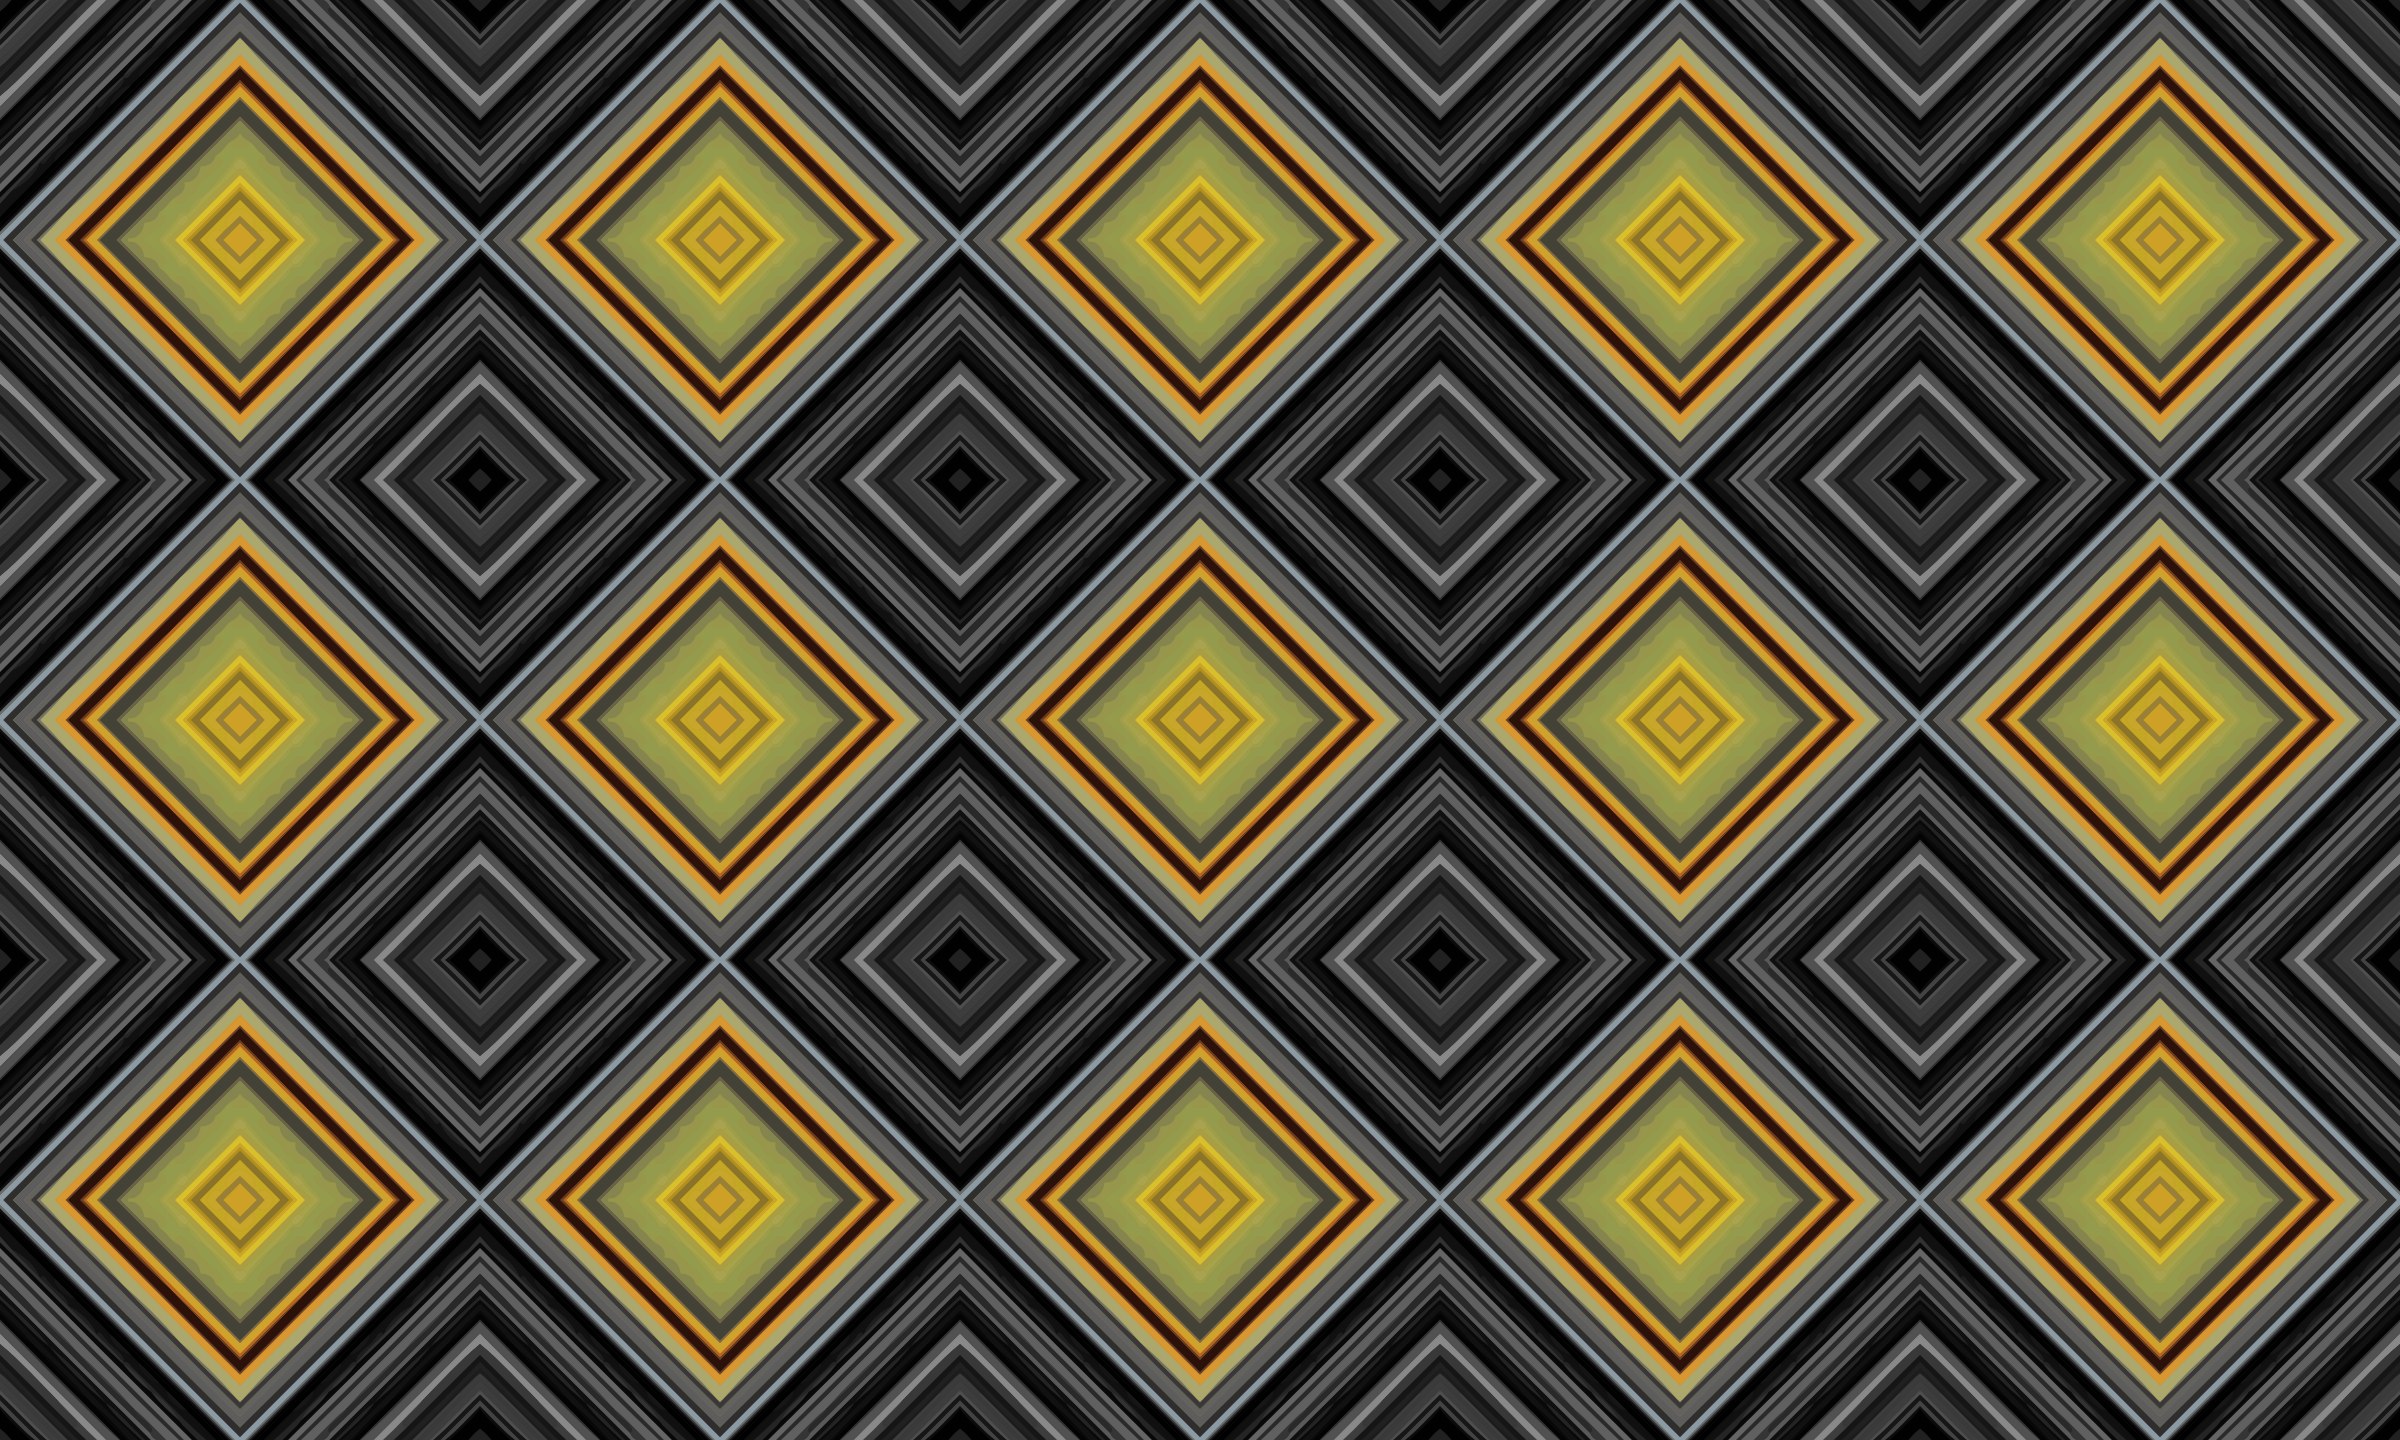 Background pattern 214 (colour 4) by Firkin